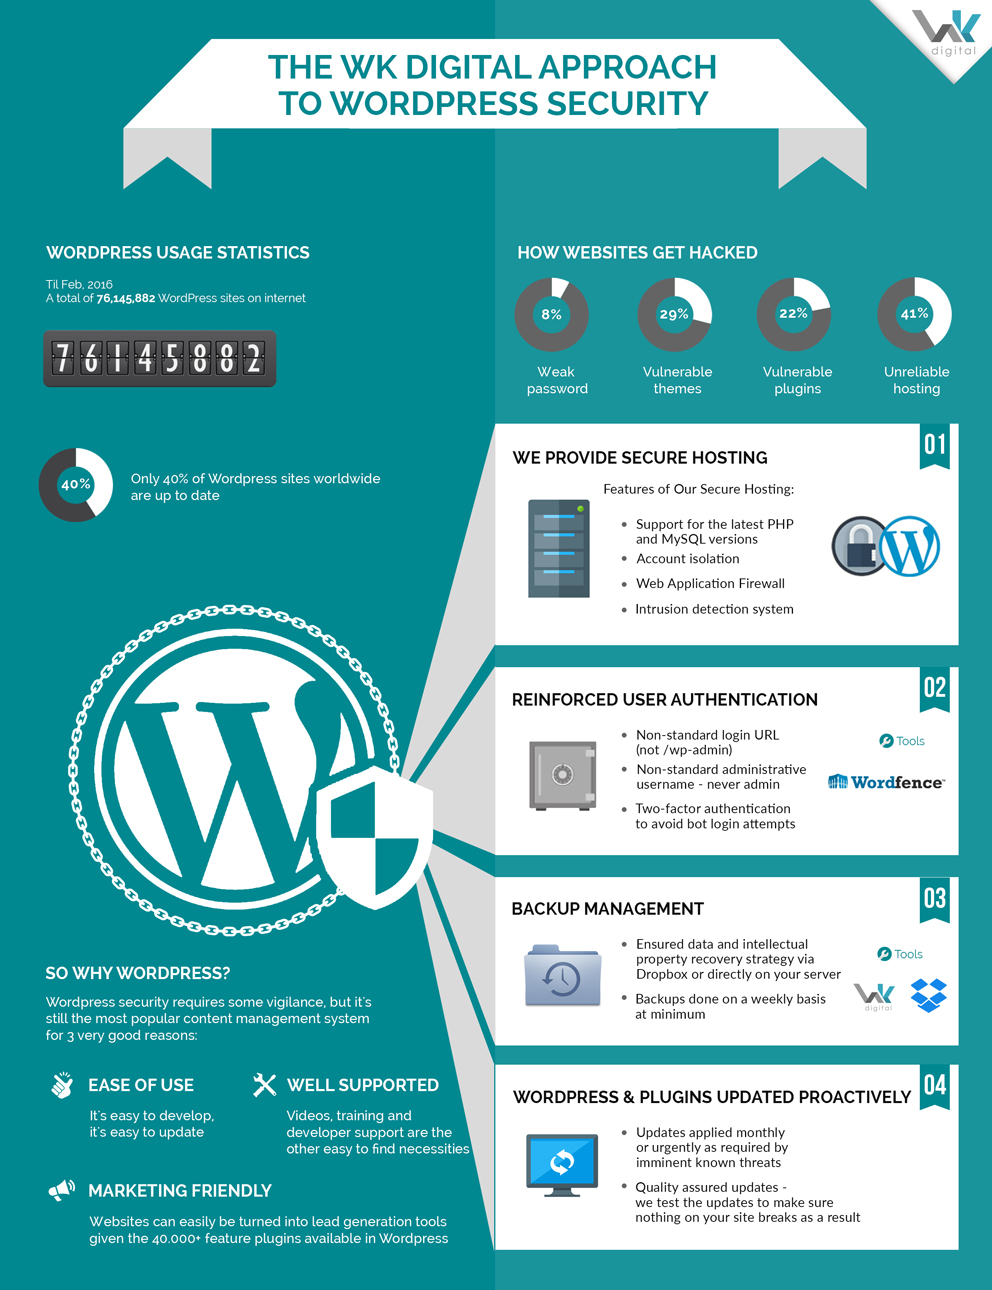 WK-Wordpress-Security